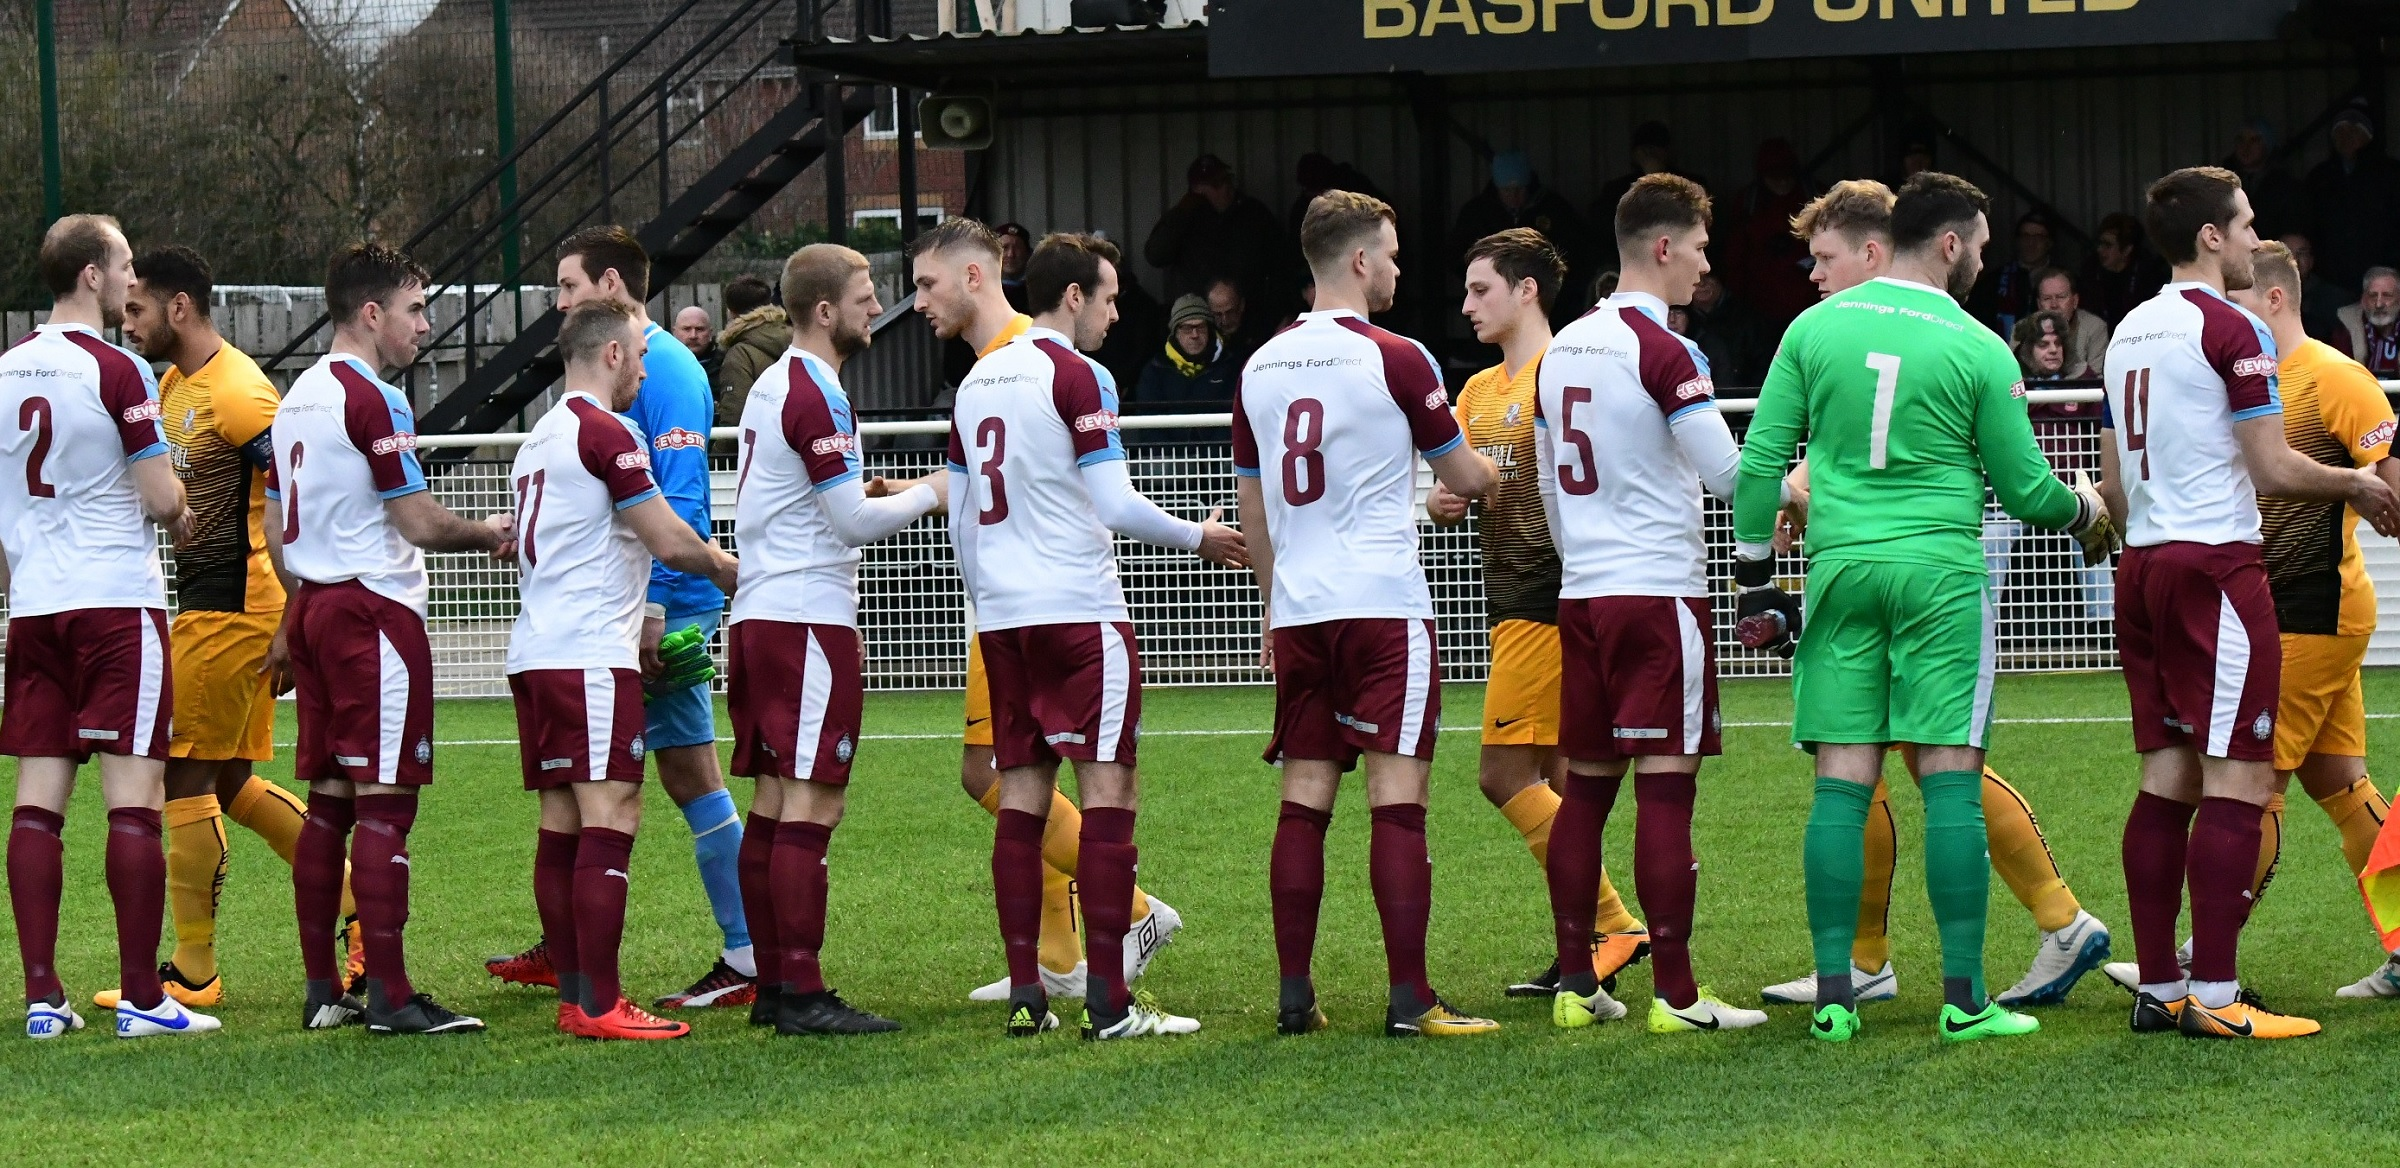 South Shields vs Basford United: A closer look at Saturday's opponents